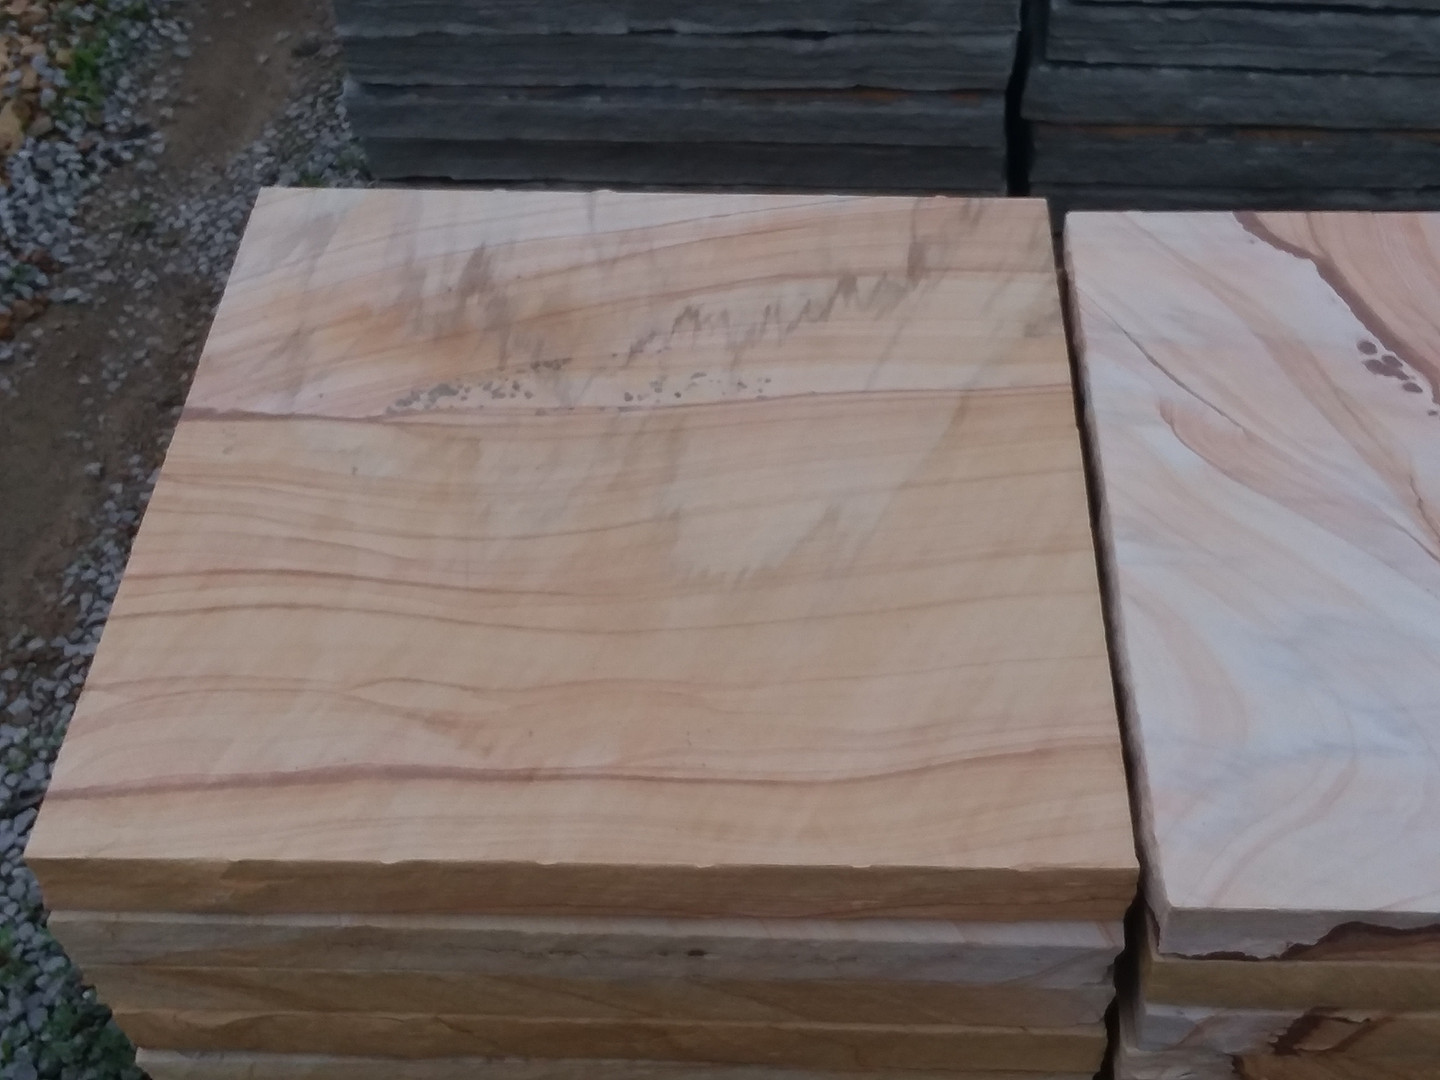 Brown and tan special cut stone